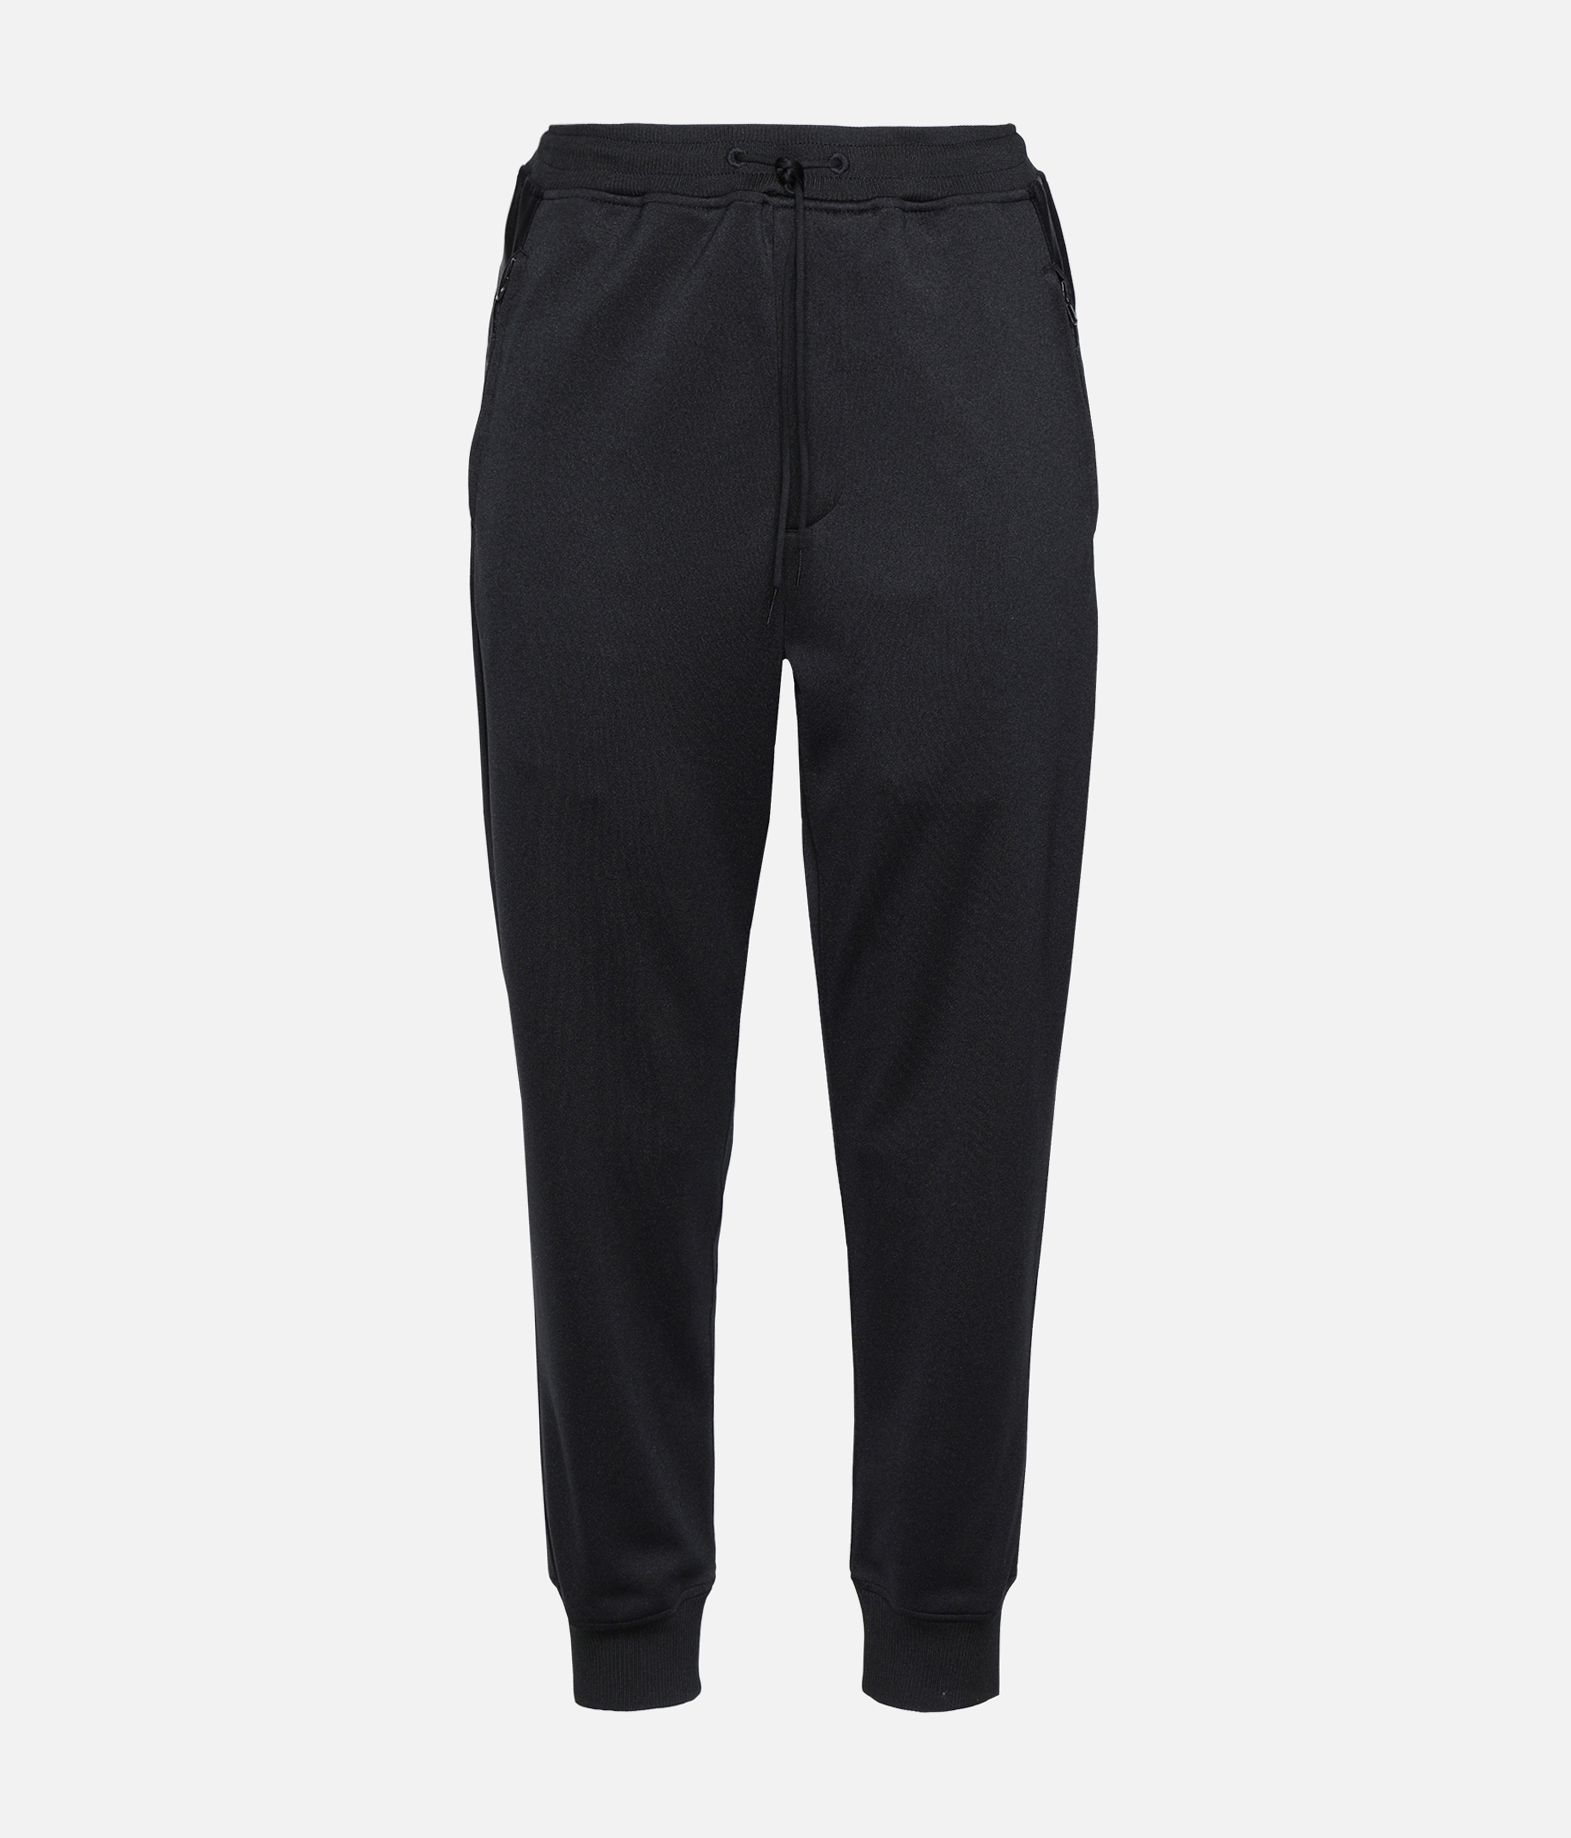 Y-3 Y-3 Classic Track Pants Track pant Woman f